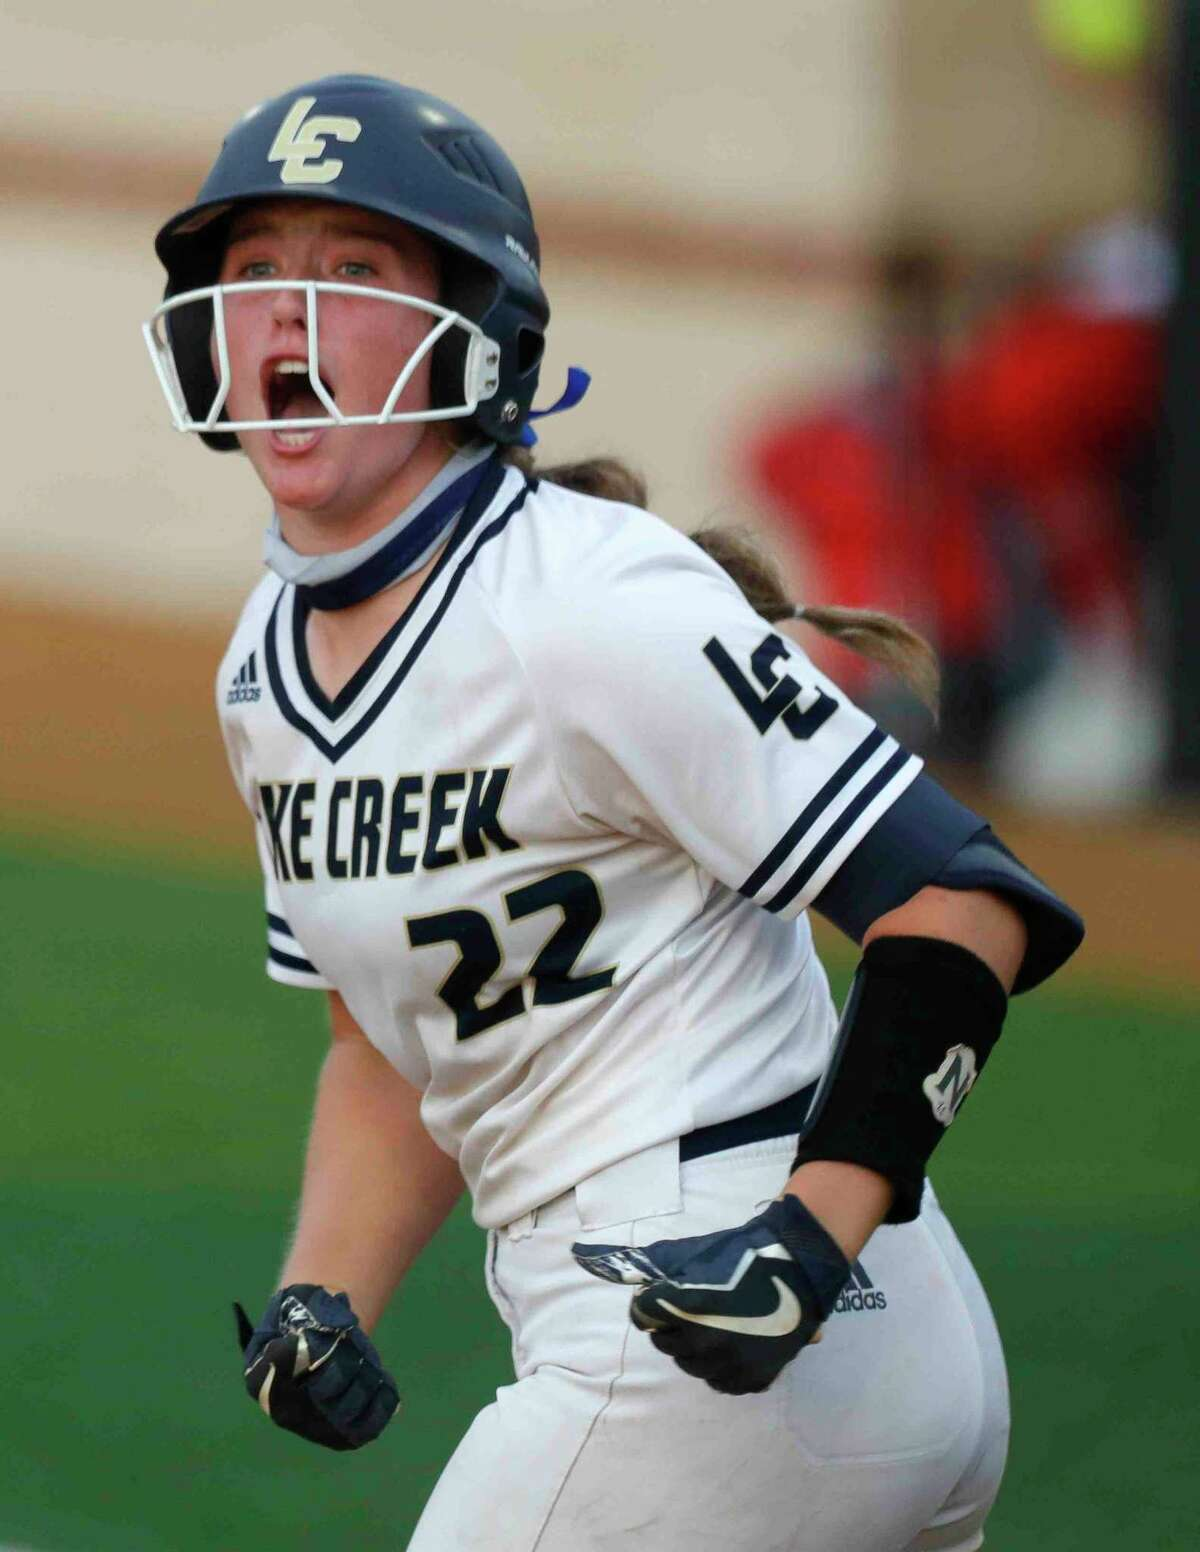 Ava Brown #22 of Lake Creek reacts after drawing a walk during a one-game Region III-5A semifinal at Grand Oak High School, Thursday, May 20, 2021, in Spring.